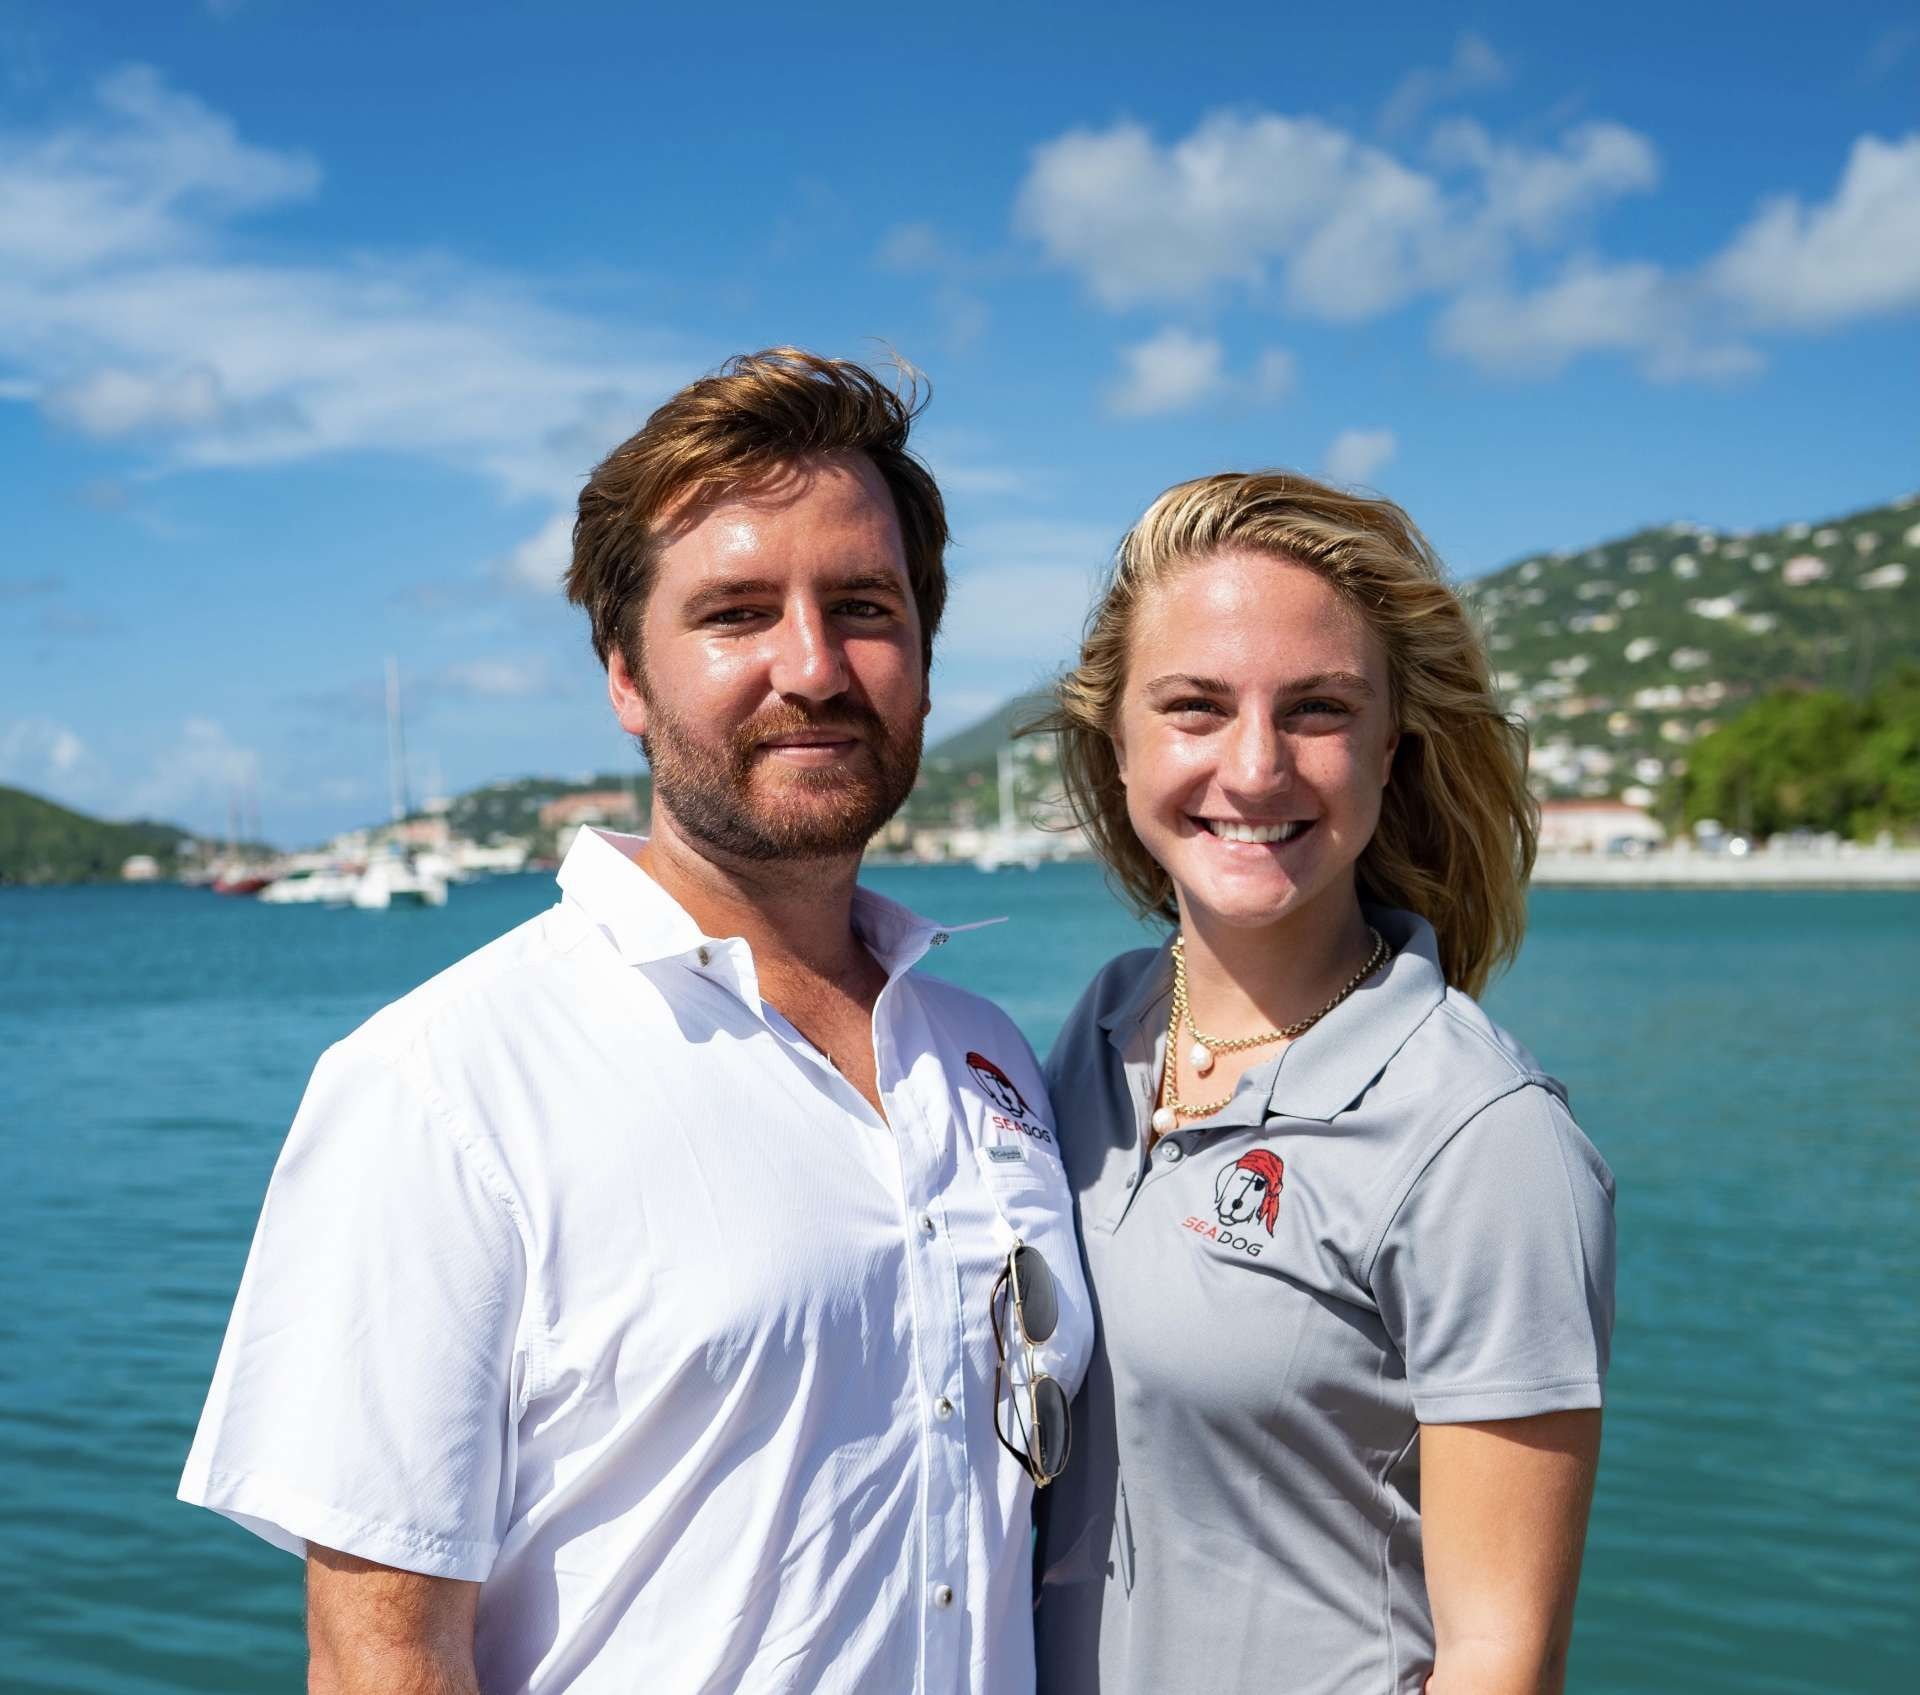 MEET THE CREW - 2019/20 SEASON<br />Captain: Keagan Steyn<br />Chef/First Mate: Olivia Boyd<br /><br />Keagan completed his Royal Yacht Academy (RYA) Coastal Yacht Master License with Commercial Endorsement in June 2017. His love for sailing began